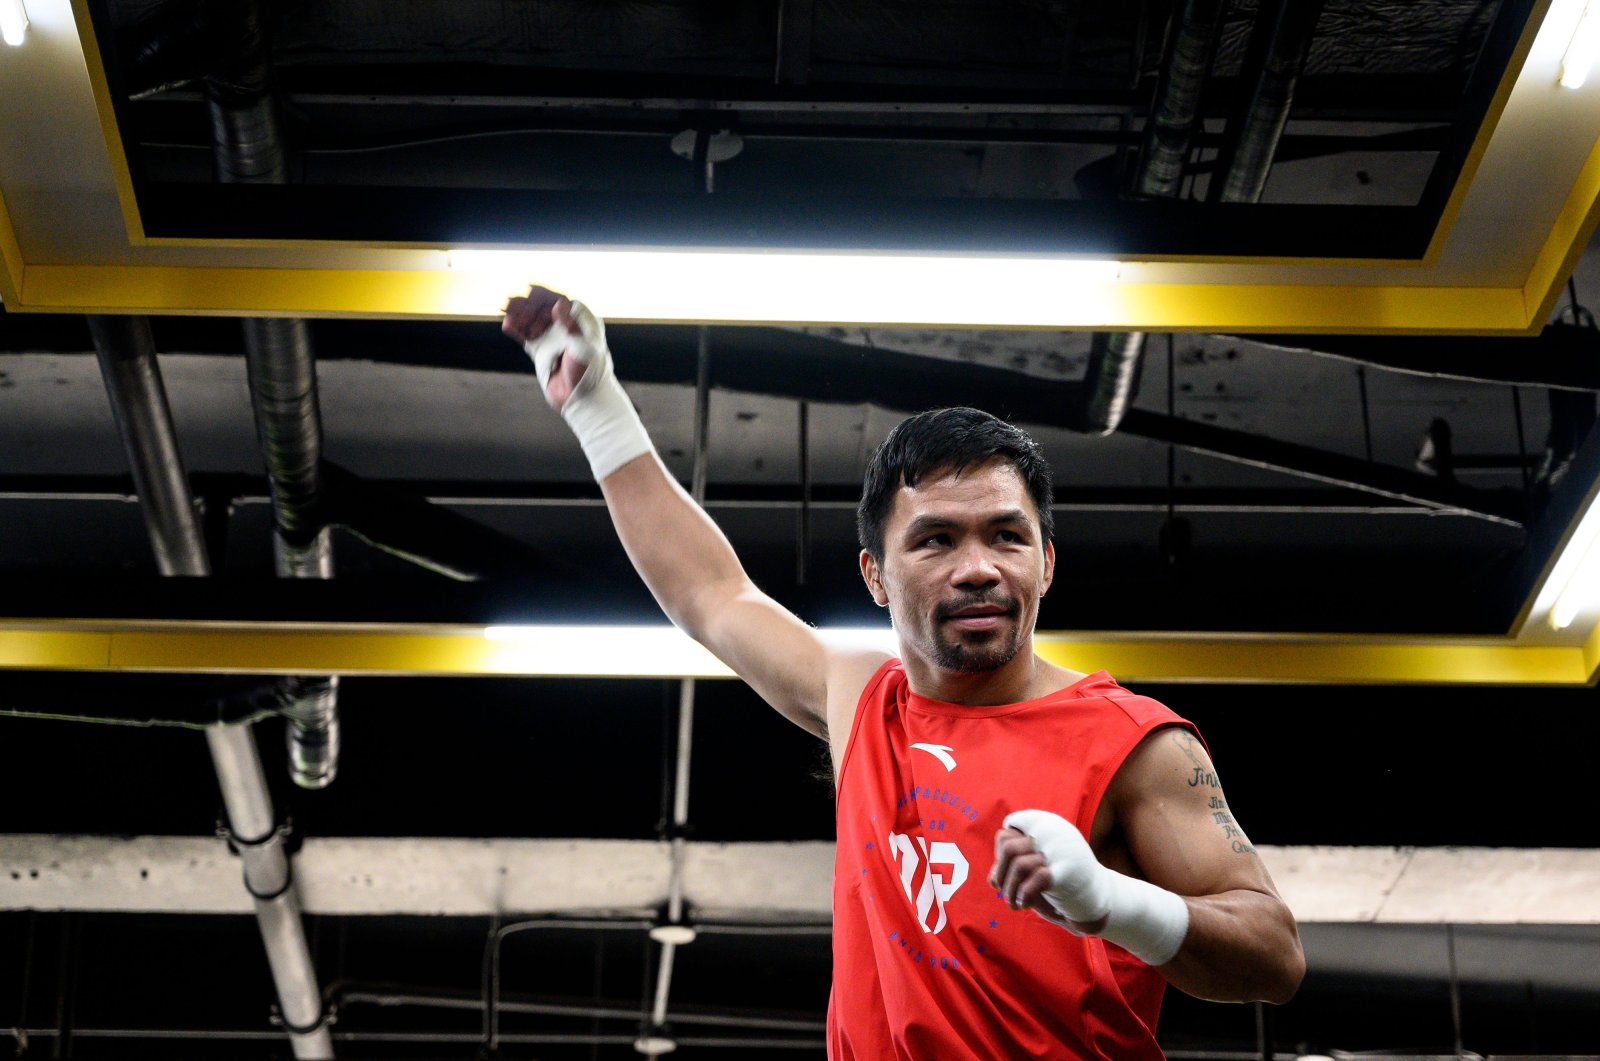 Boxing icon Manny Pacquiao trains at a gym in Manila, Philippines, June 6, 2019. (AFP Photo)